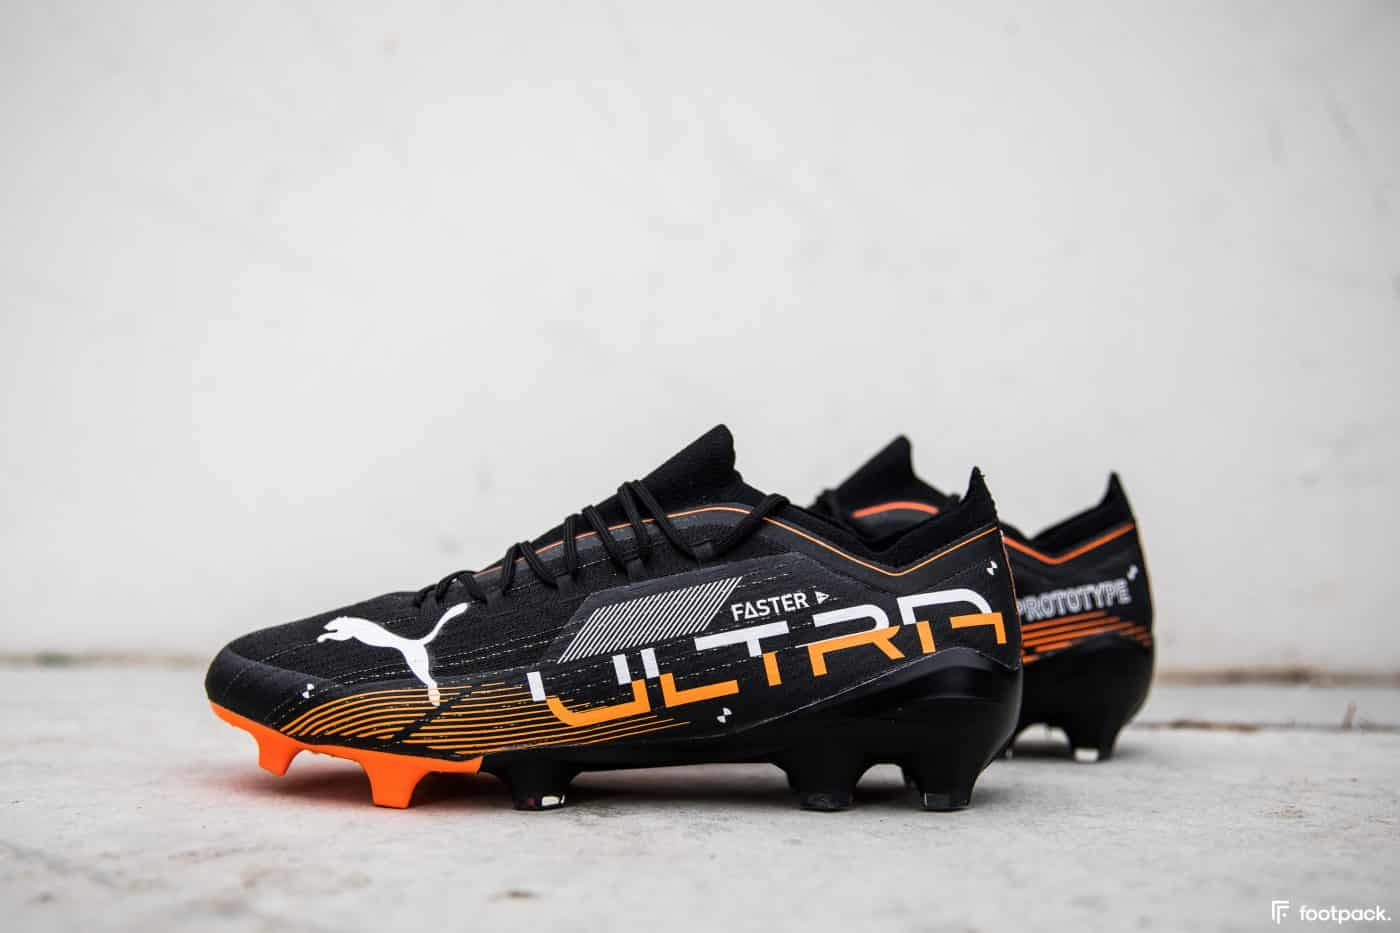 puma-chaussures-prototype-speed-boot-juillet-2020-footpack-23